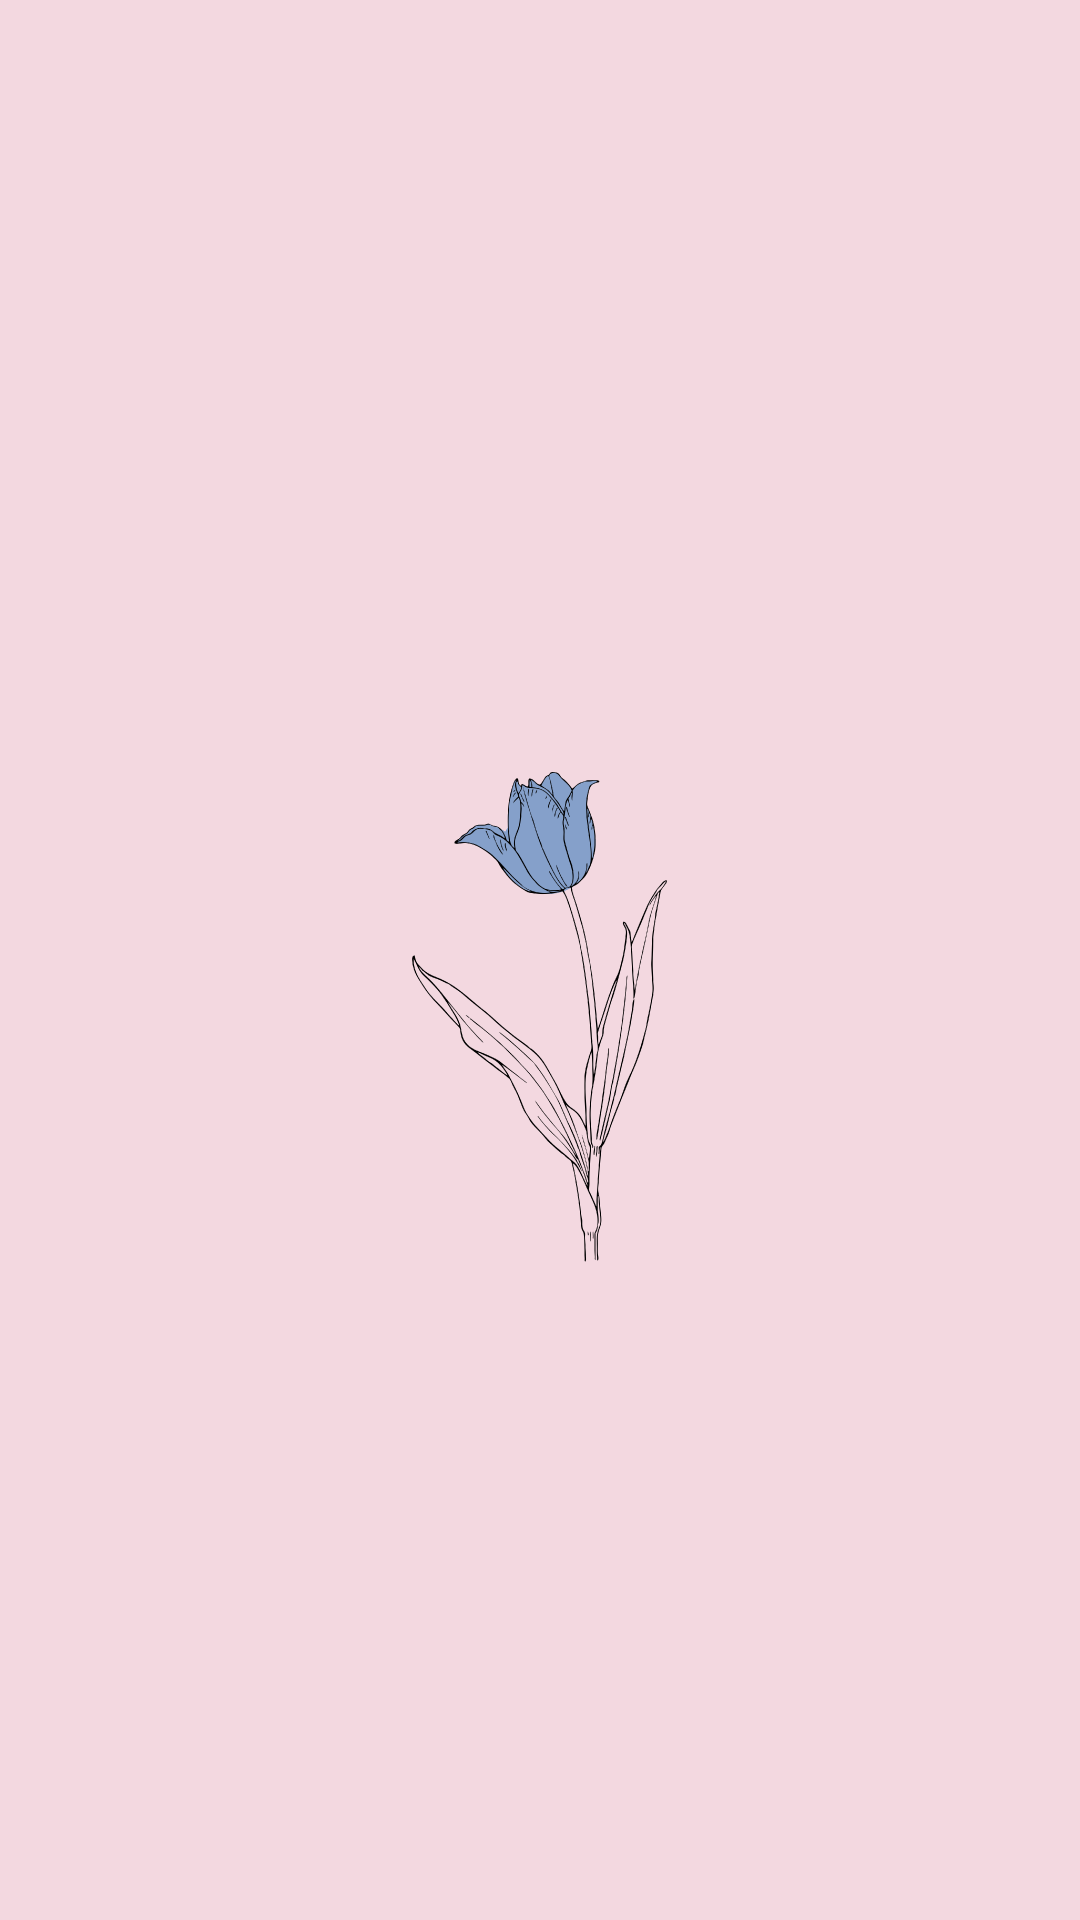 Blue Rose Minimalist Wallpaper Simple Wallpapers Cellphone